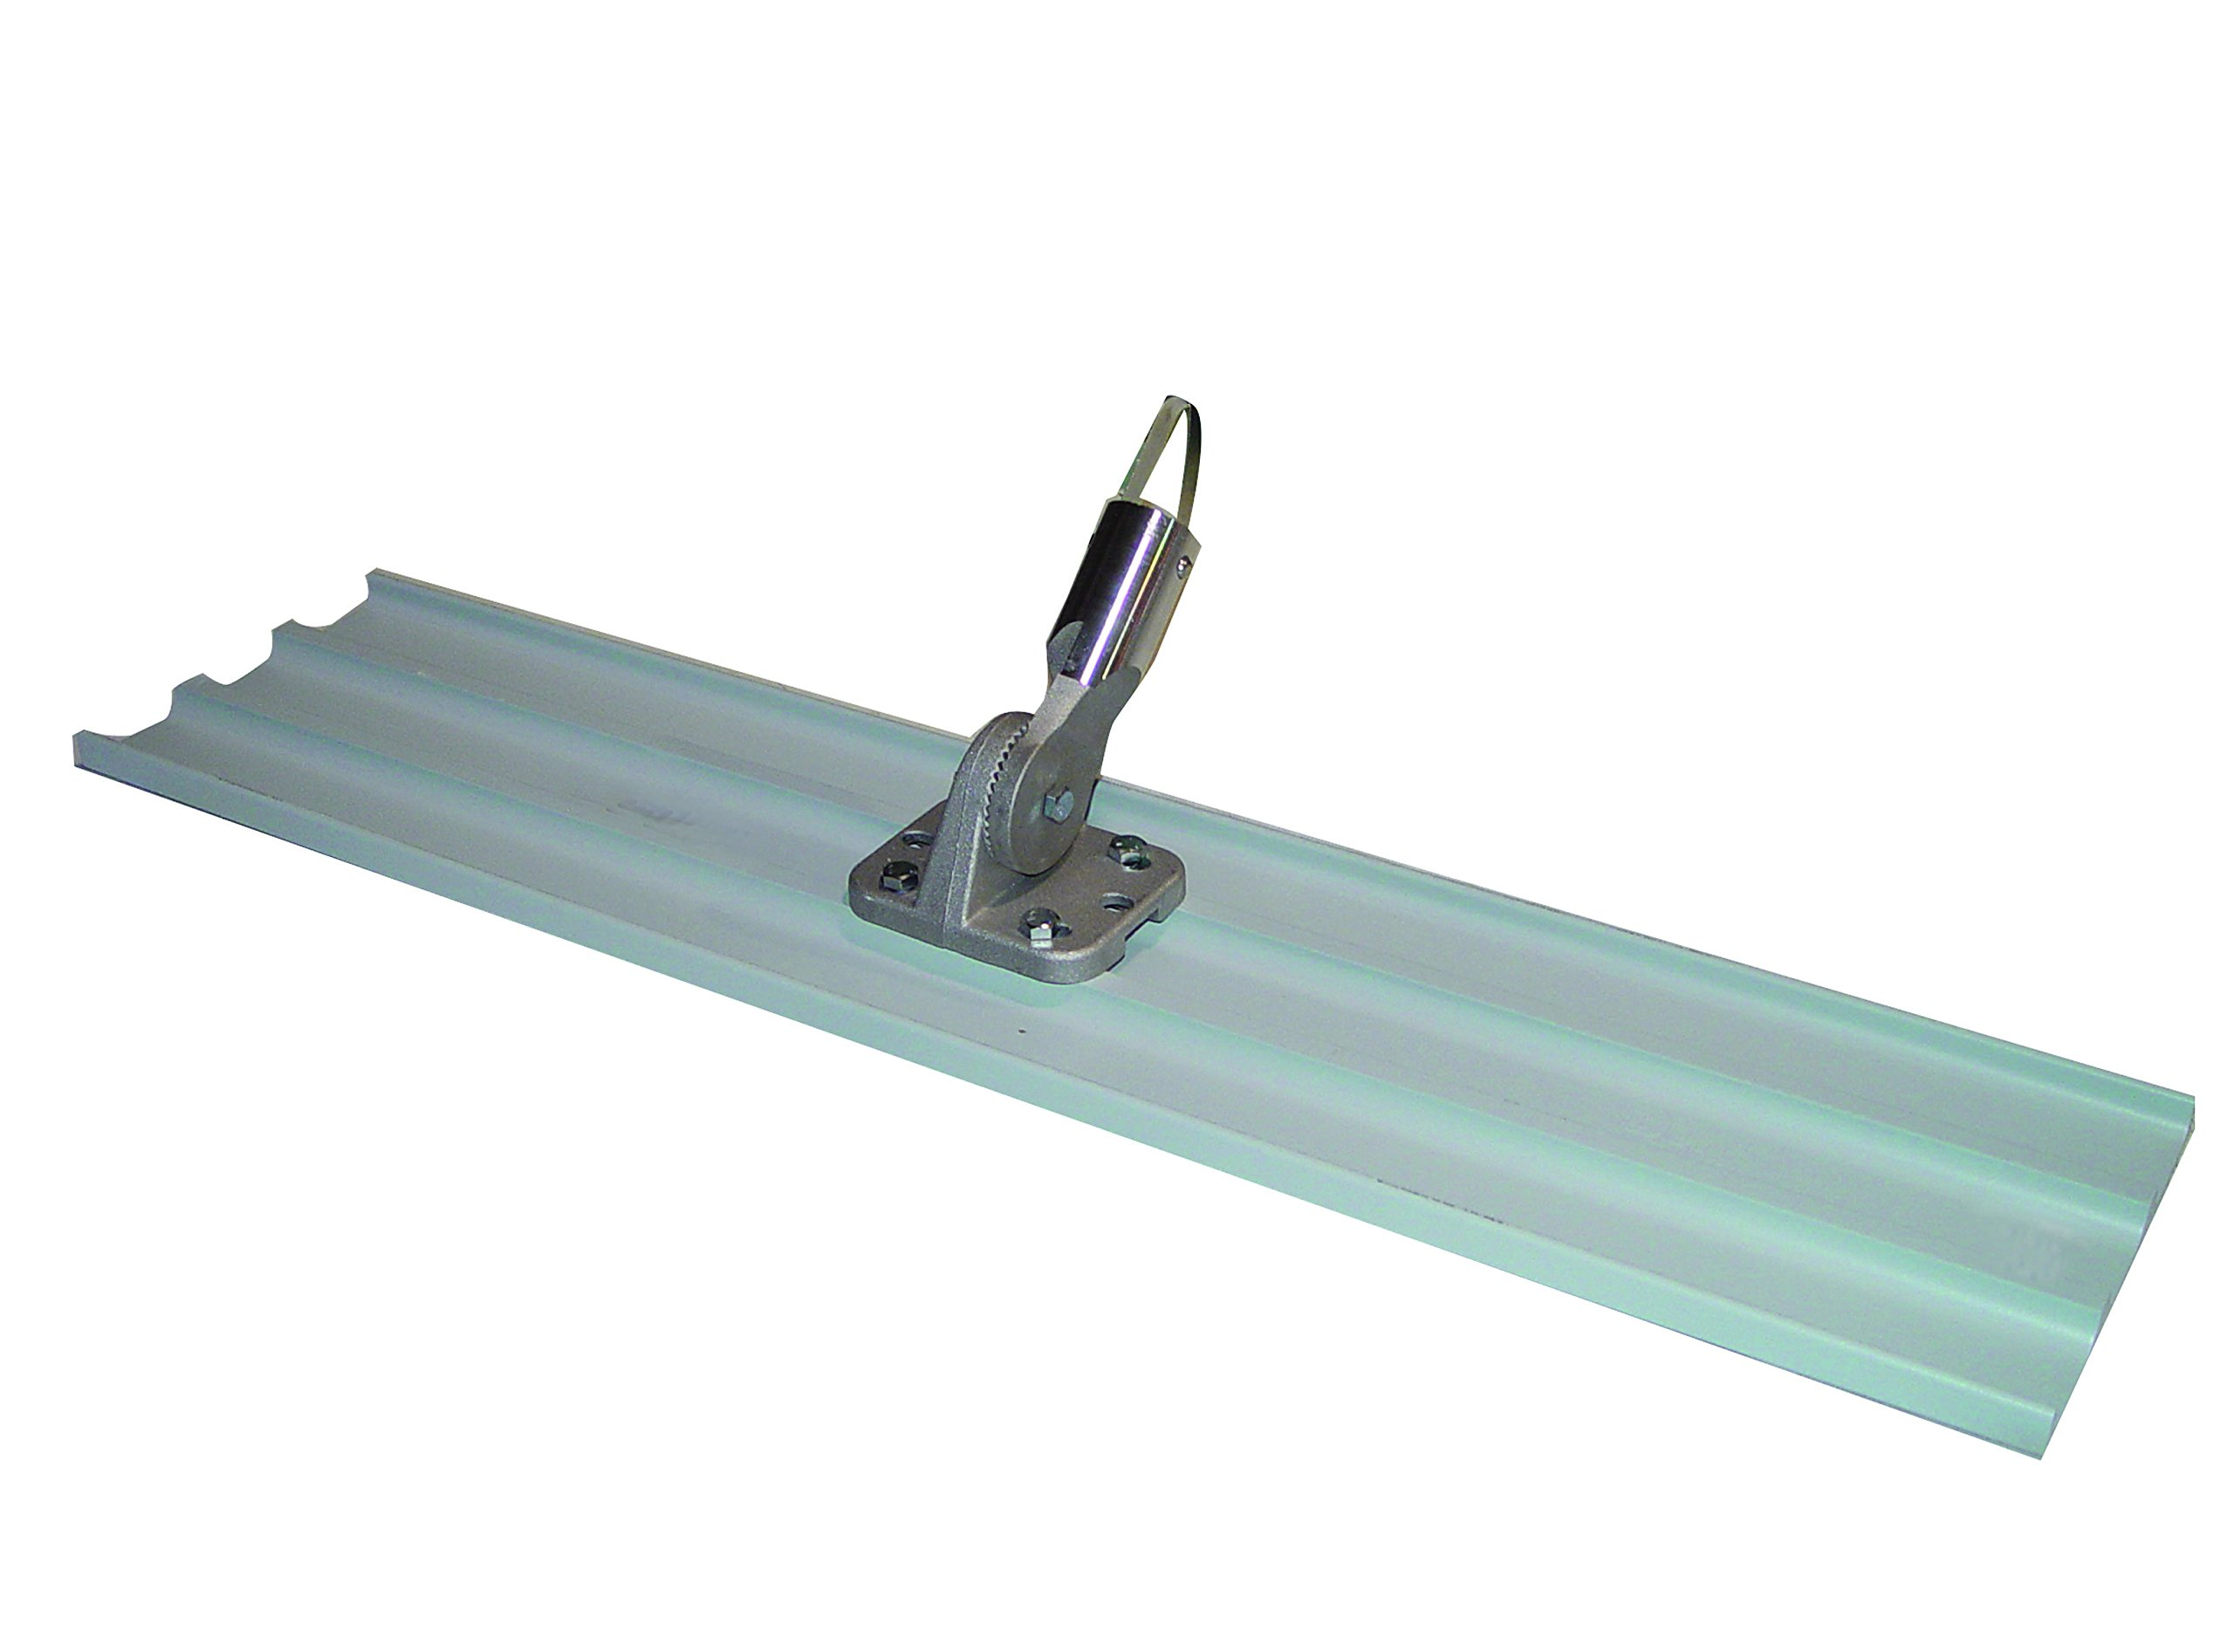 Bon 82-444 36-Inch by 8-Inch Square End Magnesium Concrete Bull Float with Universal Button Hole Bracket by bon